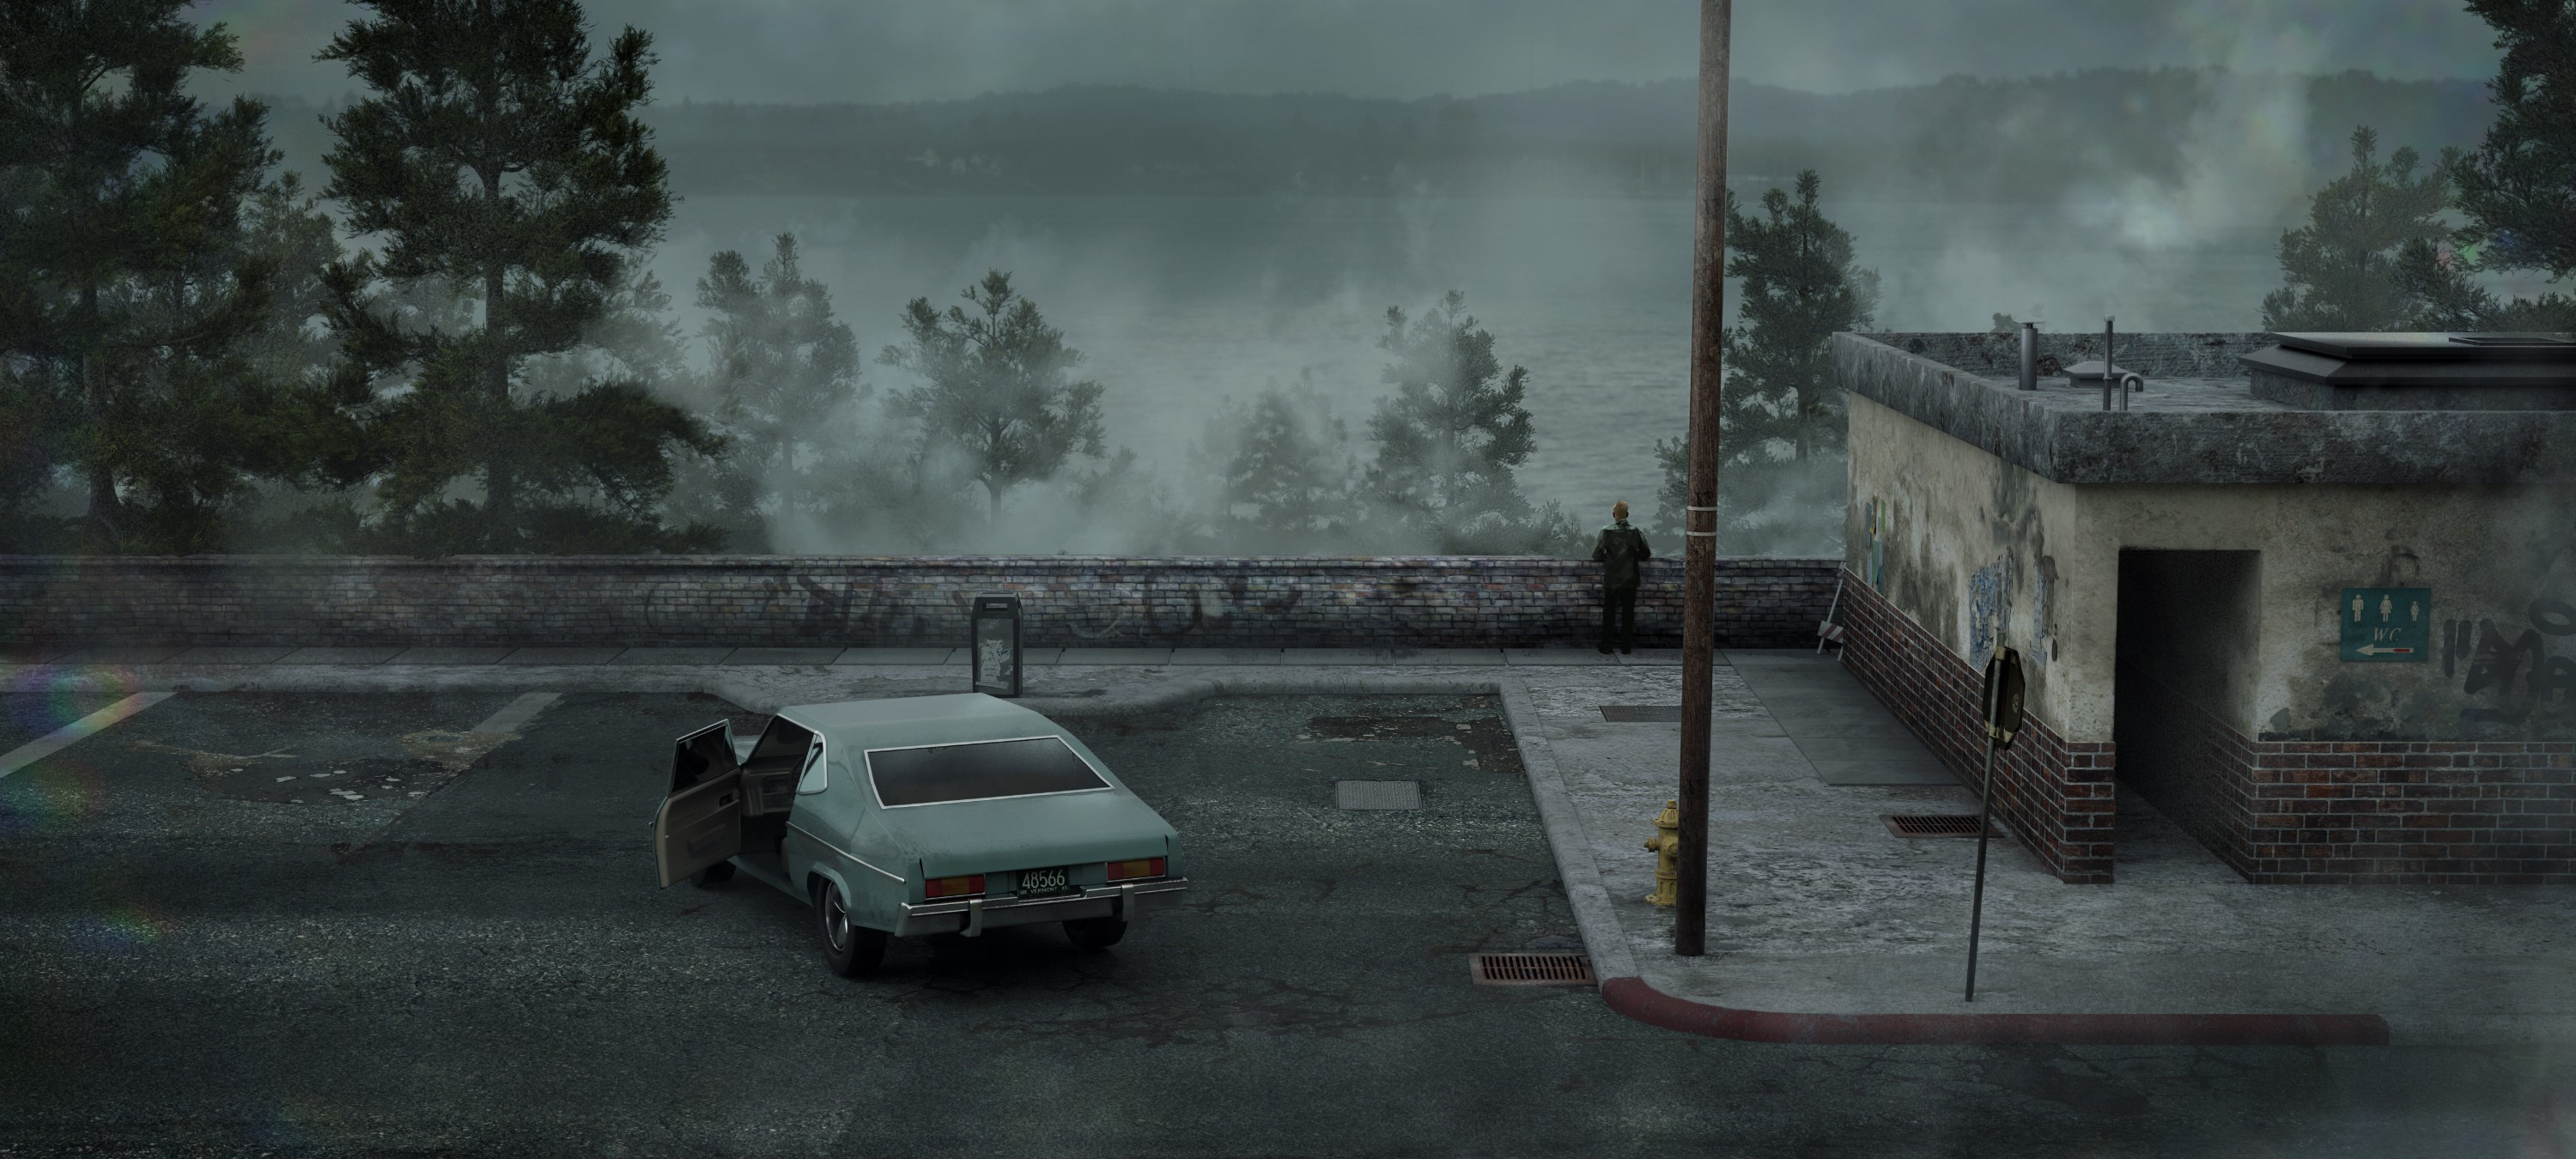 Silent Hill 2 Hd Wallpaper Background Image 3000x1350 Id